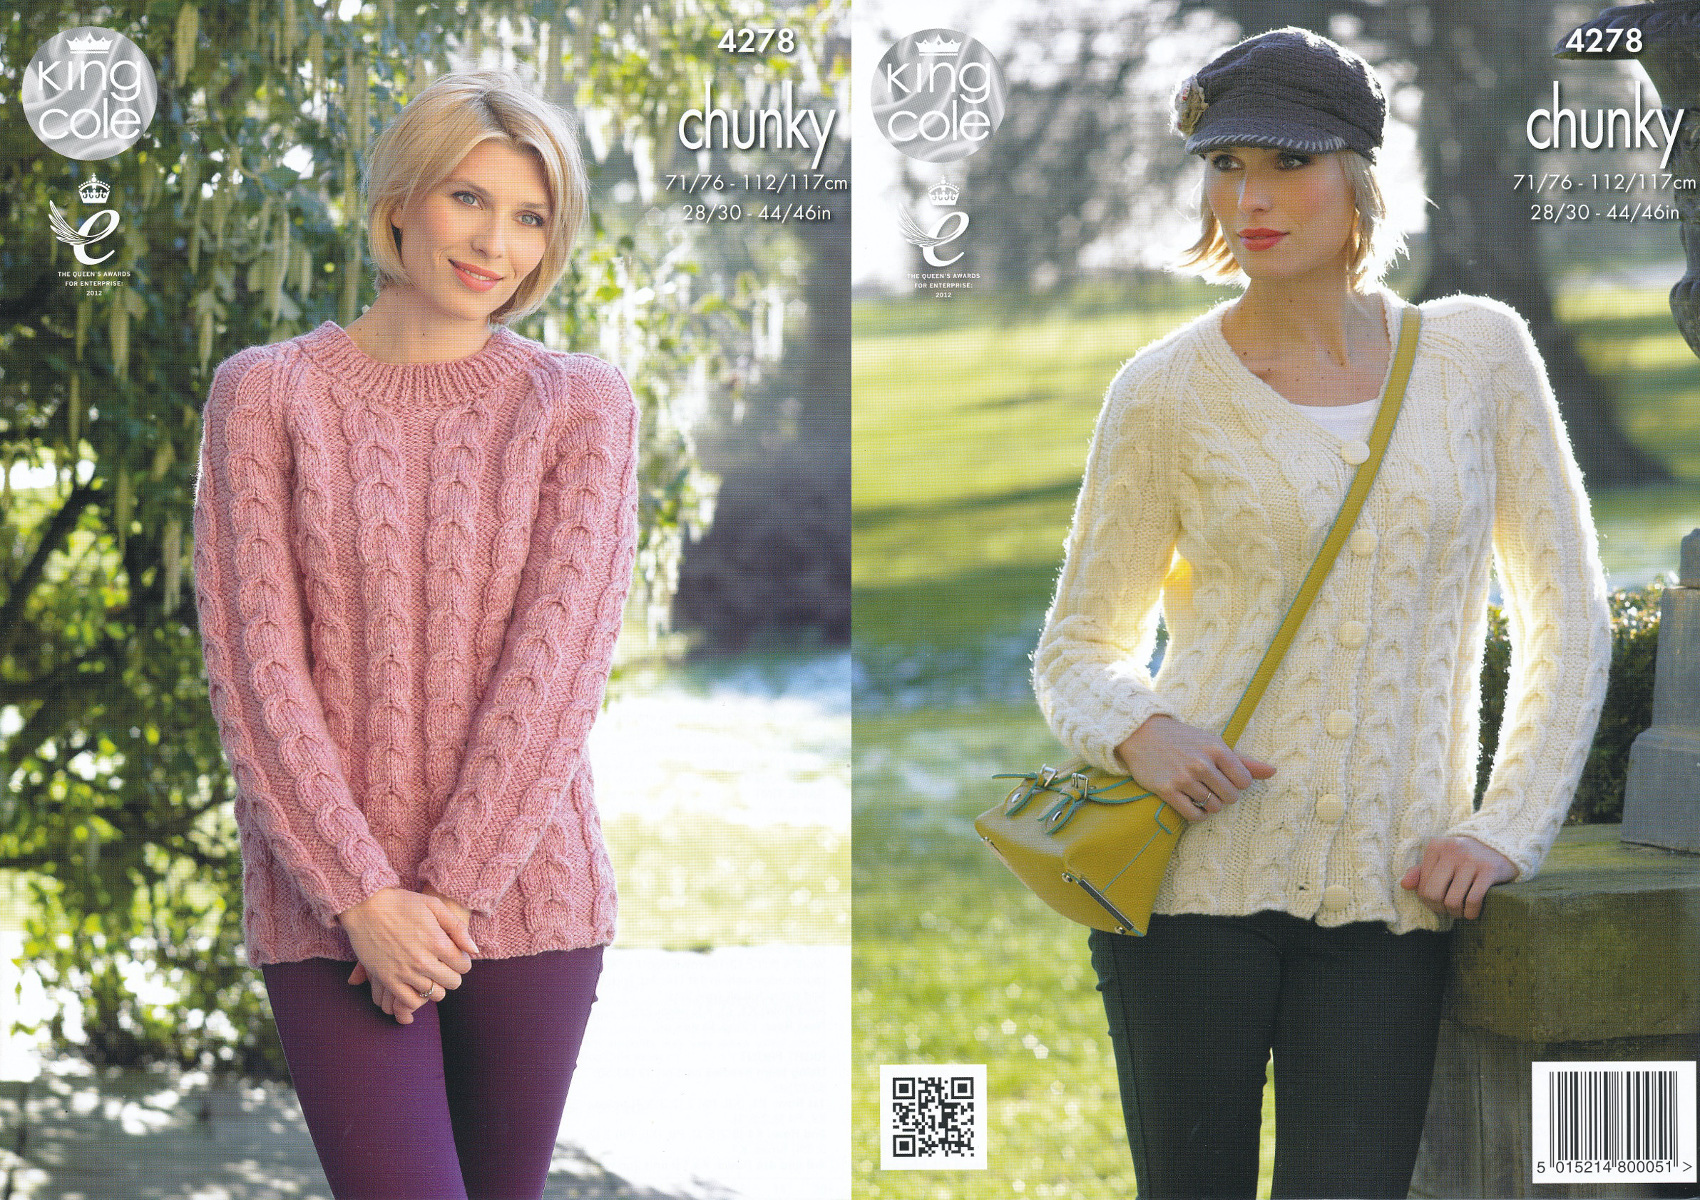 Fantástico Knitting Patterns For Sweaters Modelo - Manta de Tejer ...